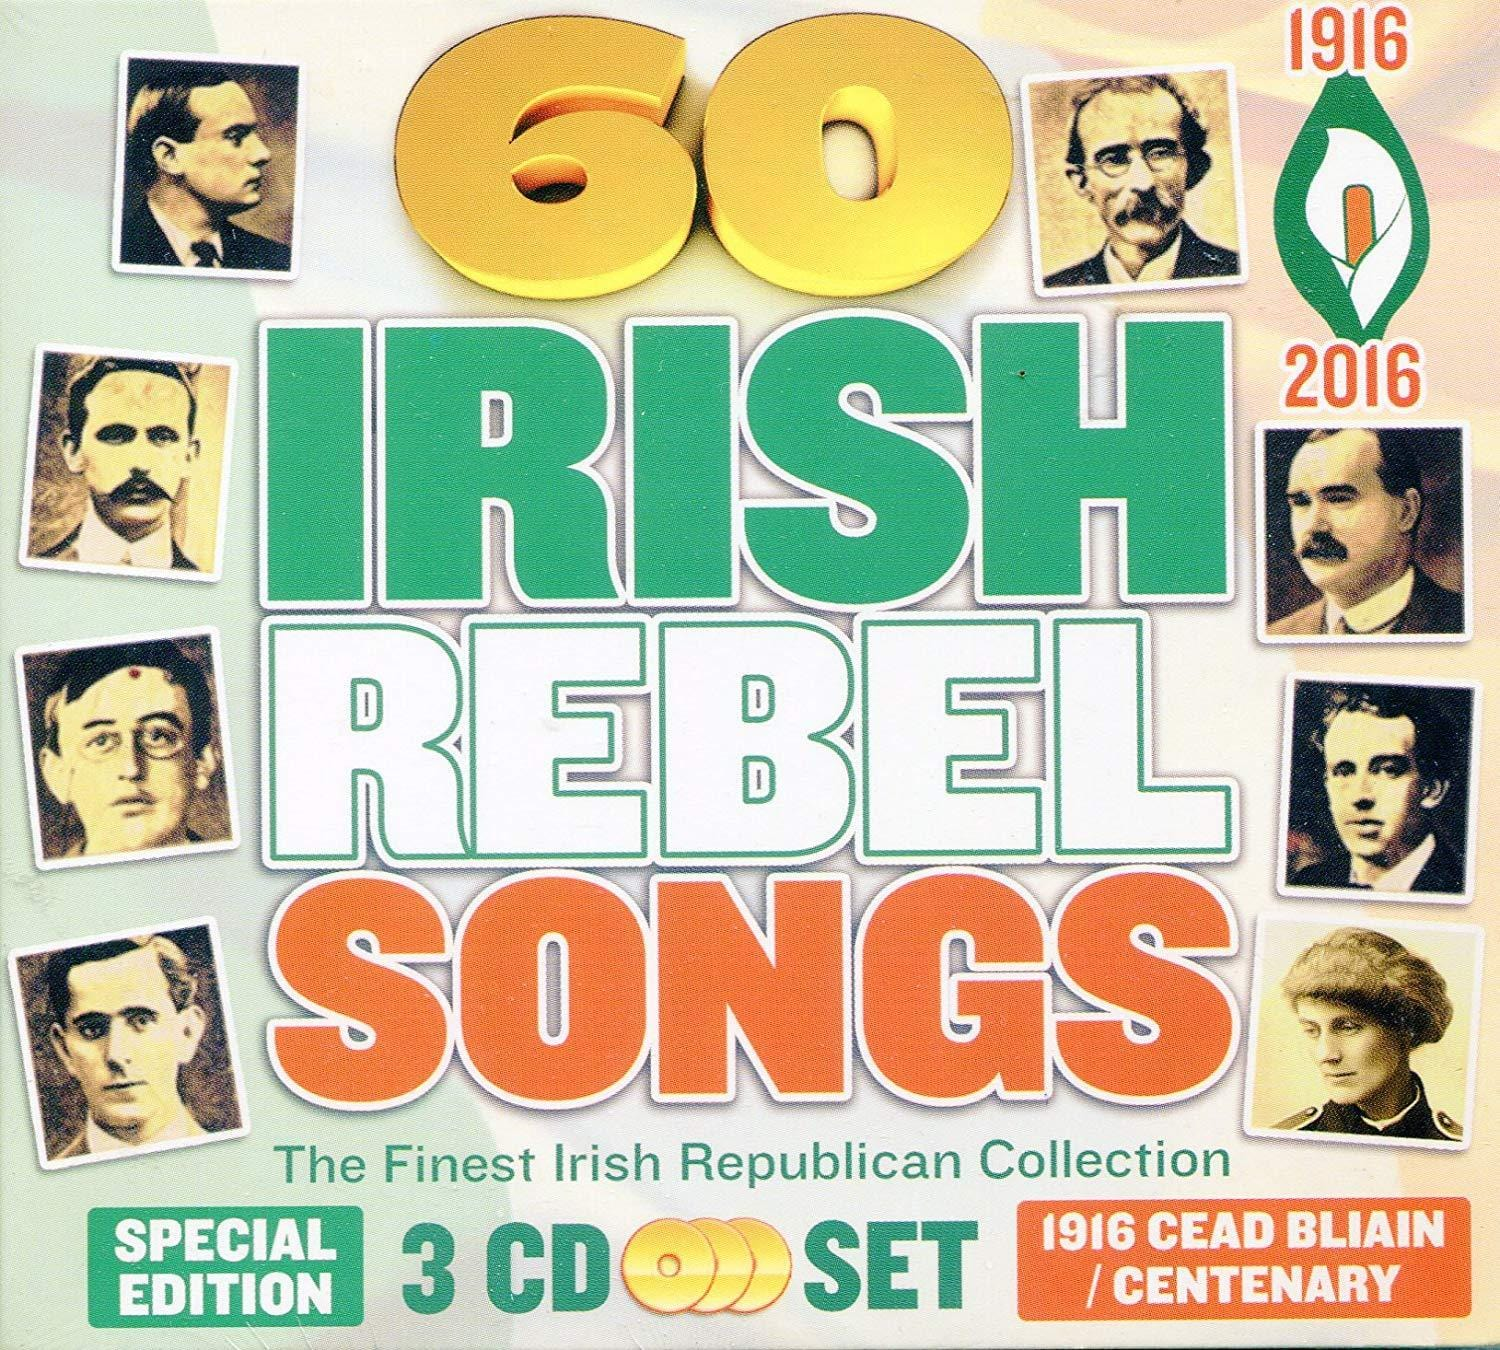 60 Irish Rebel songs - The Finest Irish Republican Collection Easter Rising 1916 Set) [CD]